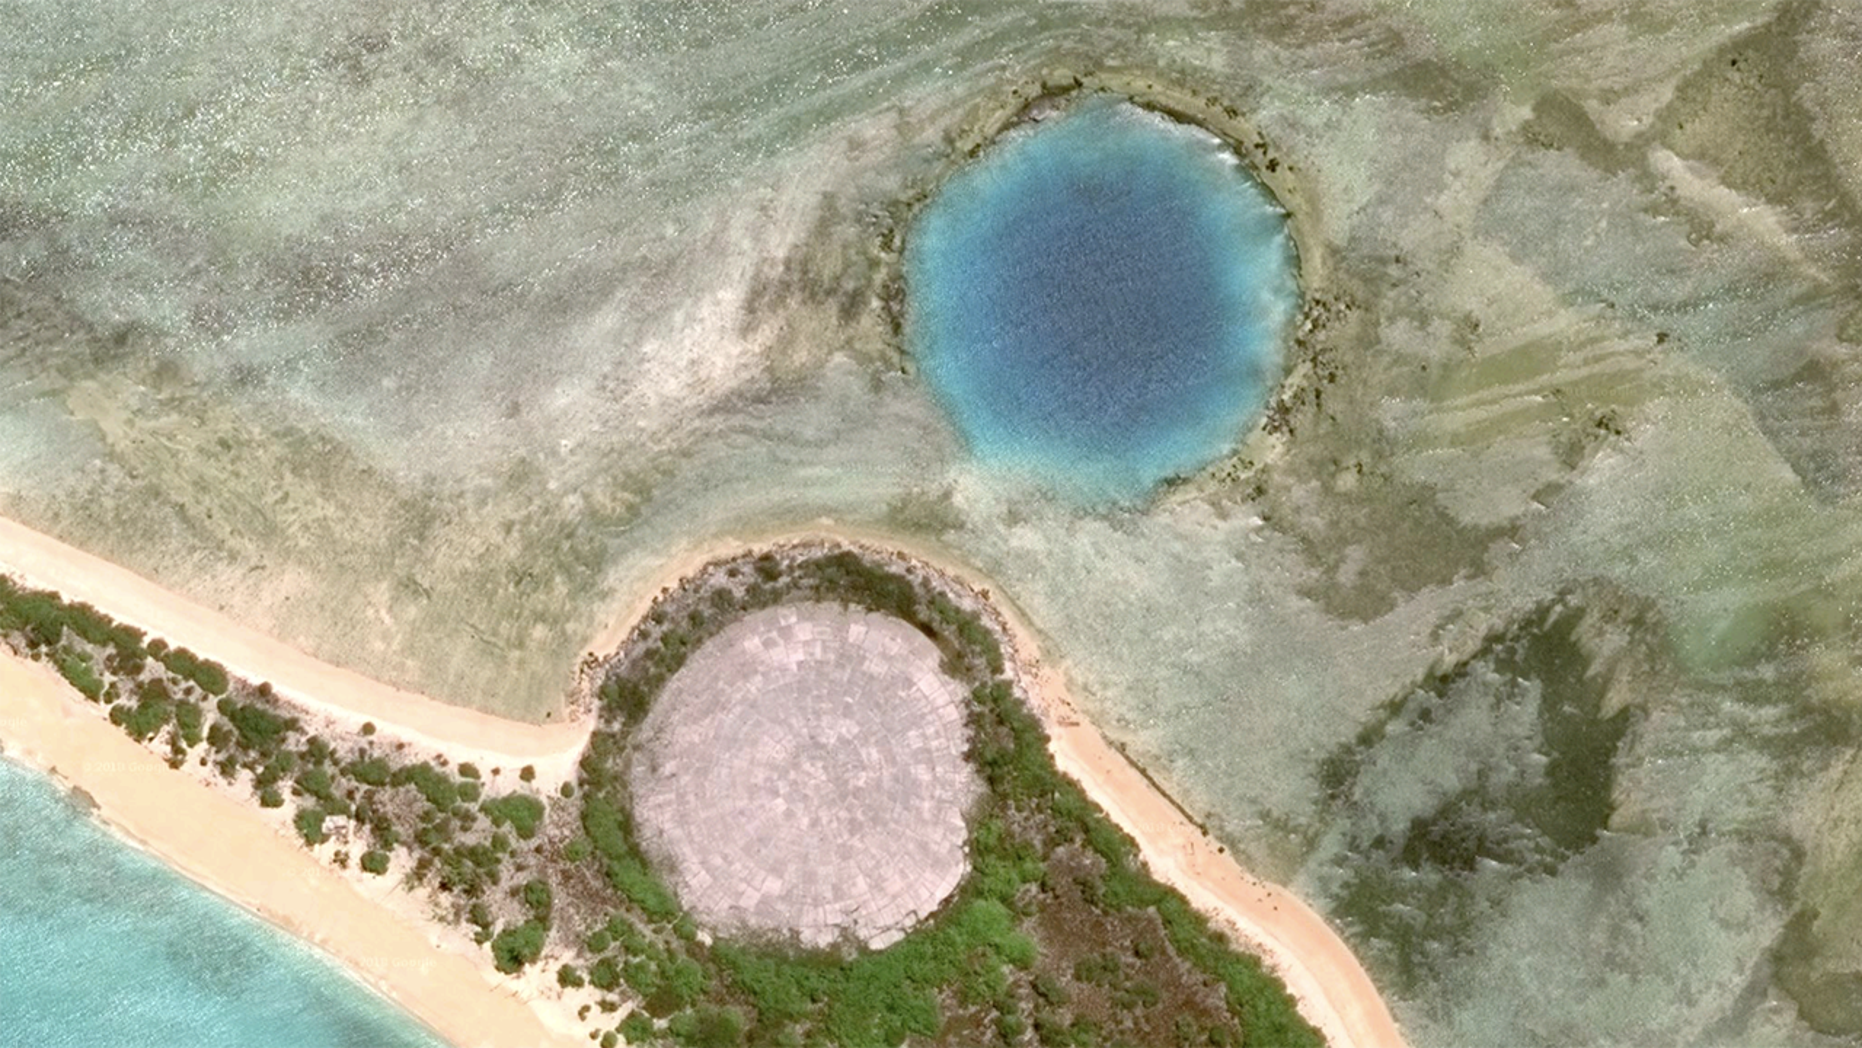 During its clean-up operation on Enewetak Atoll, in the Marshall Islands, themilitary built a giant concrete dome to house the toxic material left over from the nuclear tests.